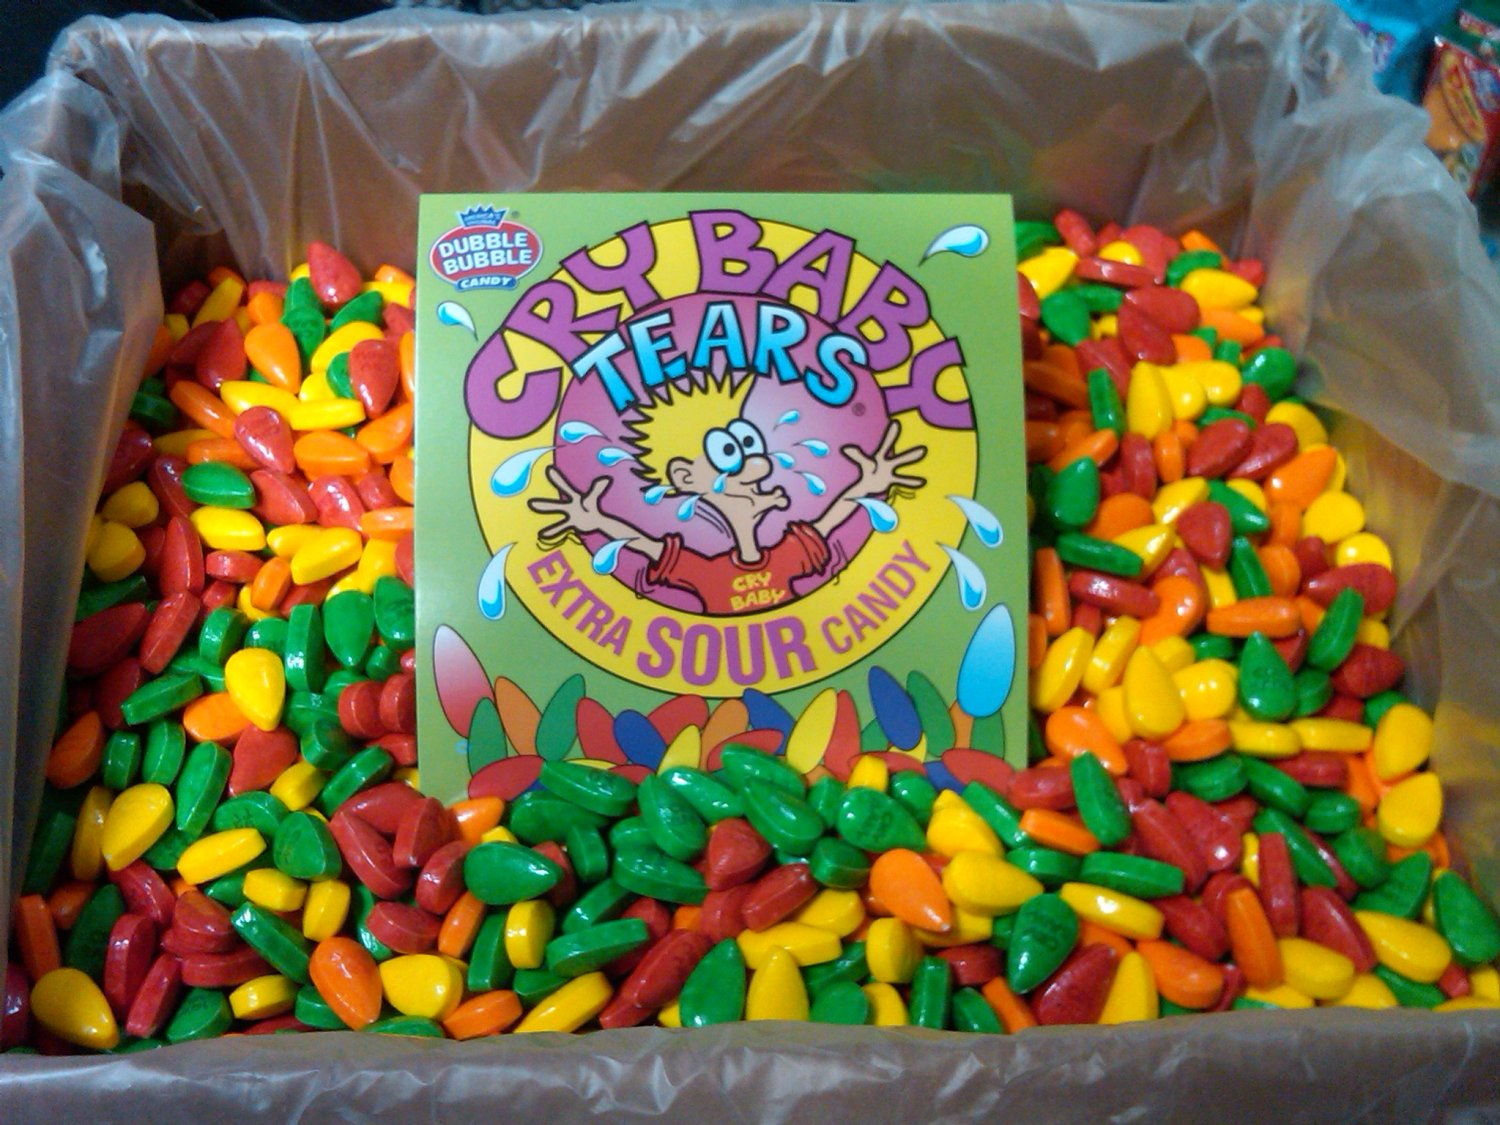 CRY BABY TEARS CANDY 2 LBS